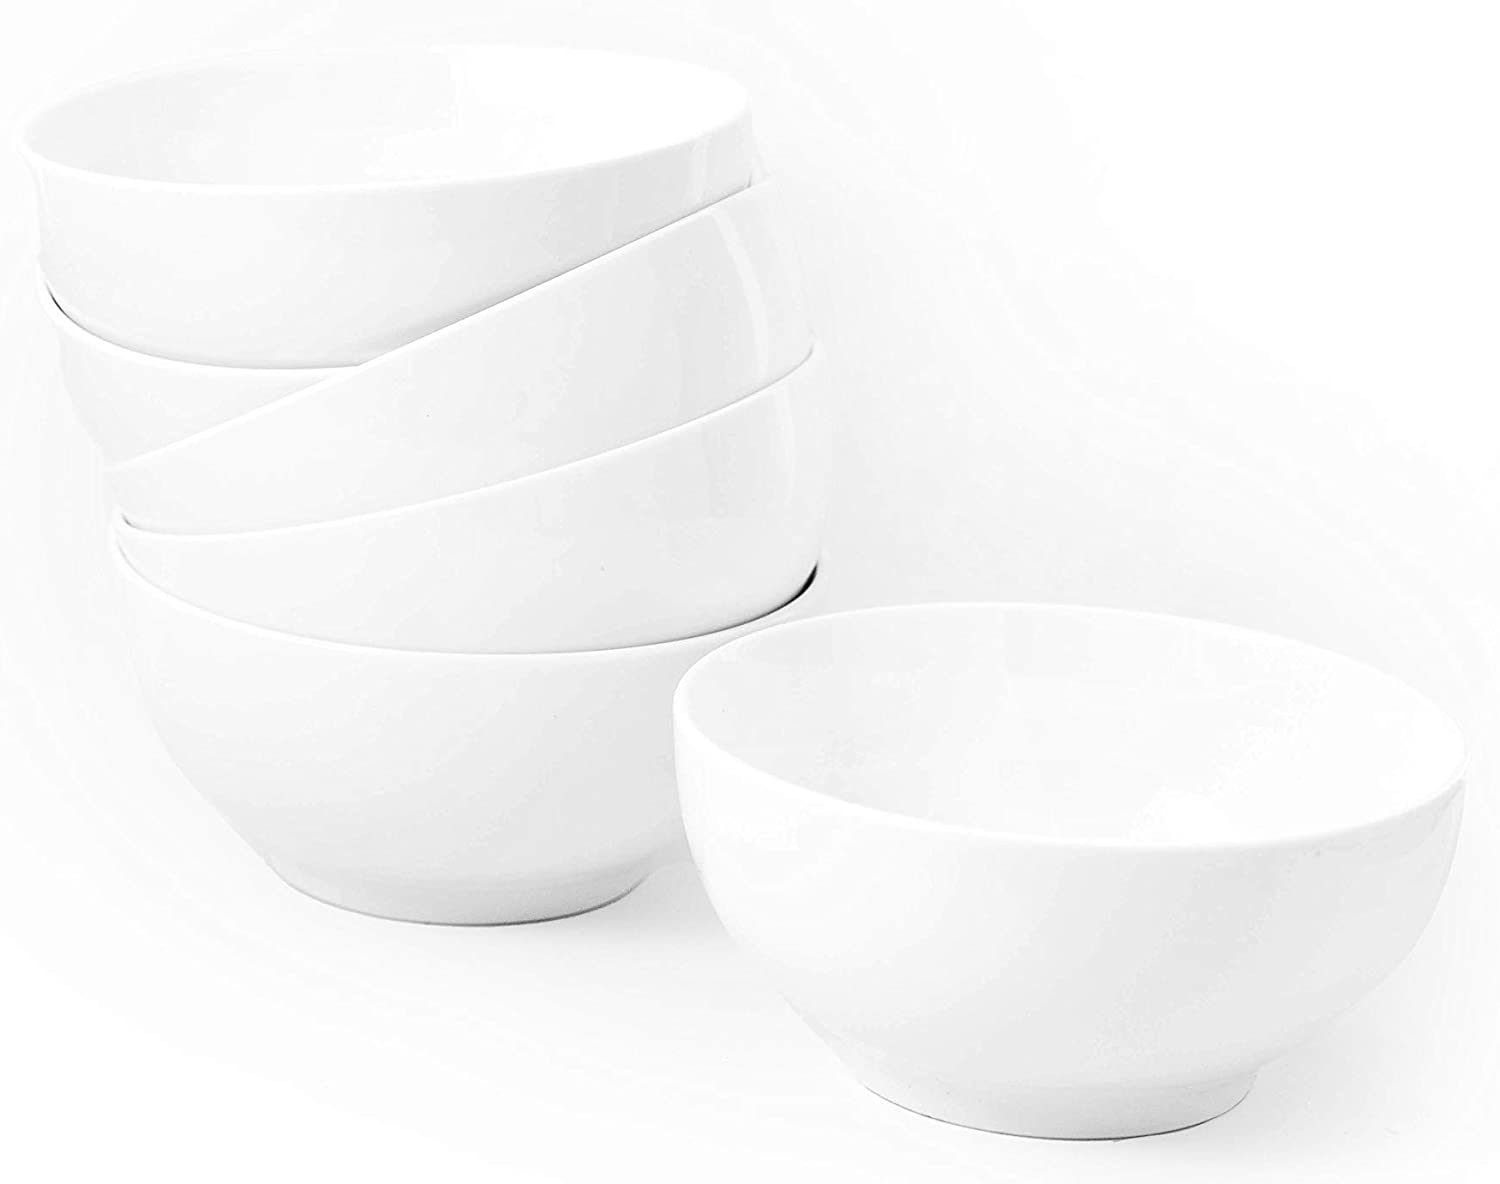 Amuse- Professional Porcelain Bistro Collection Daily Bowls for Cereal, Soup and Fruit- Set of 6-22 oz